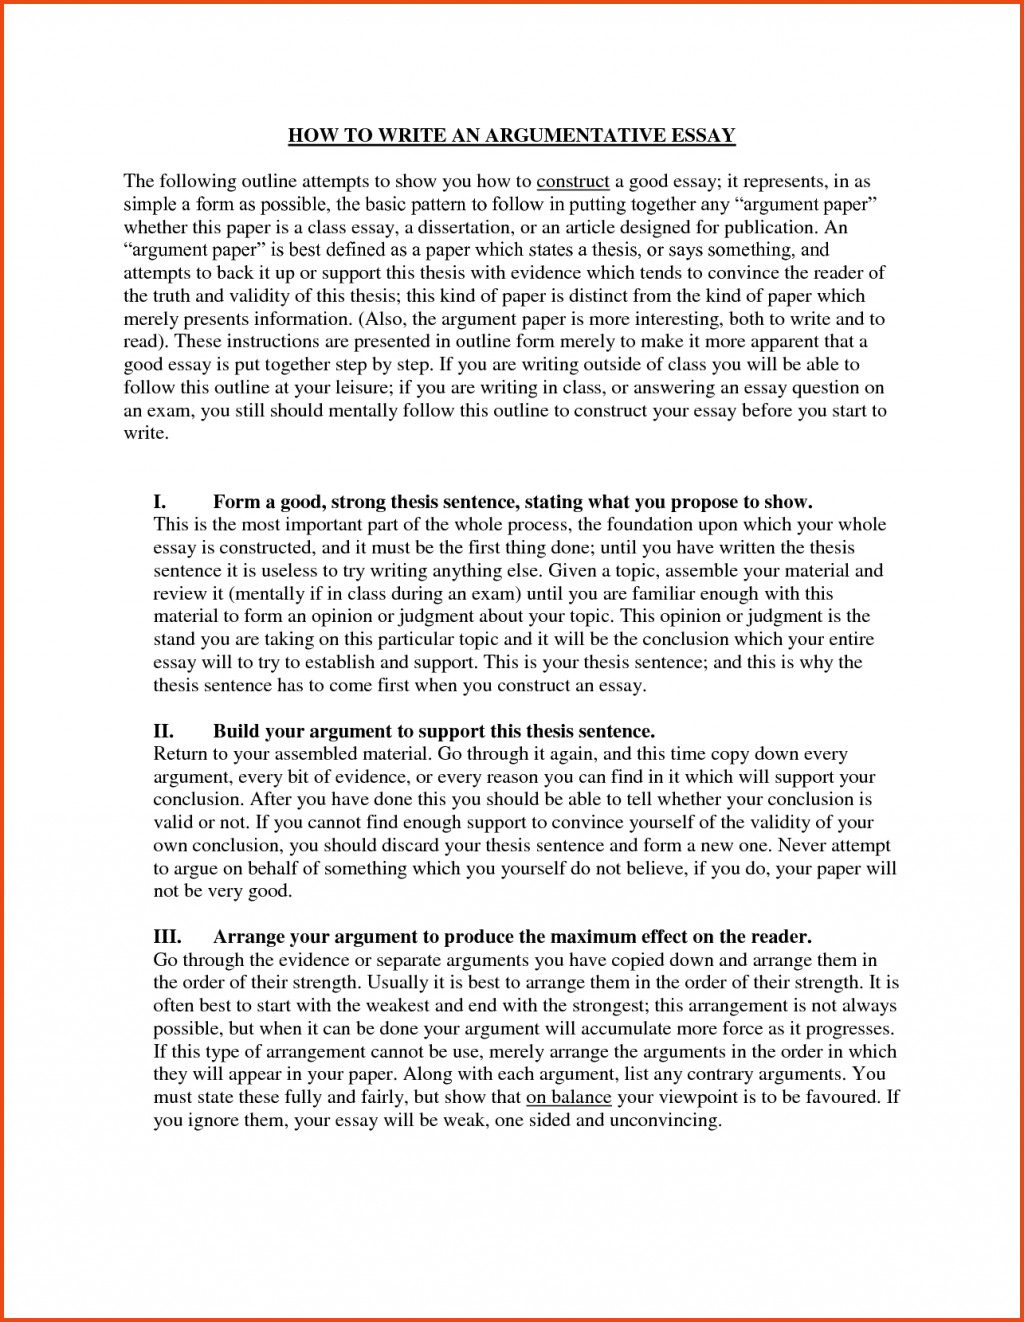 003 Brilliant Ideas Of Good Ways Tort An Essay About Yourself Dissertation Nice How Photo Example Fascinating To Start Funny Introduction A Book University Large